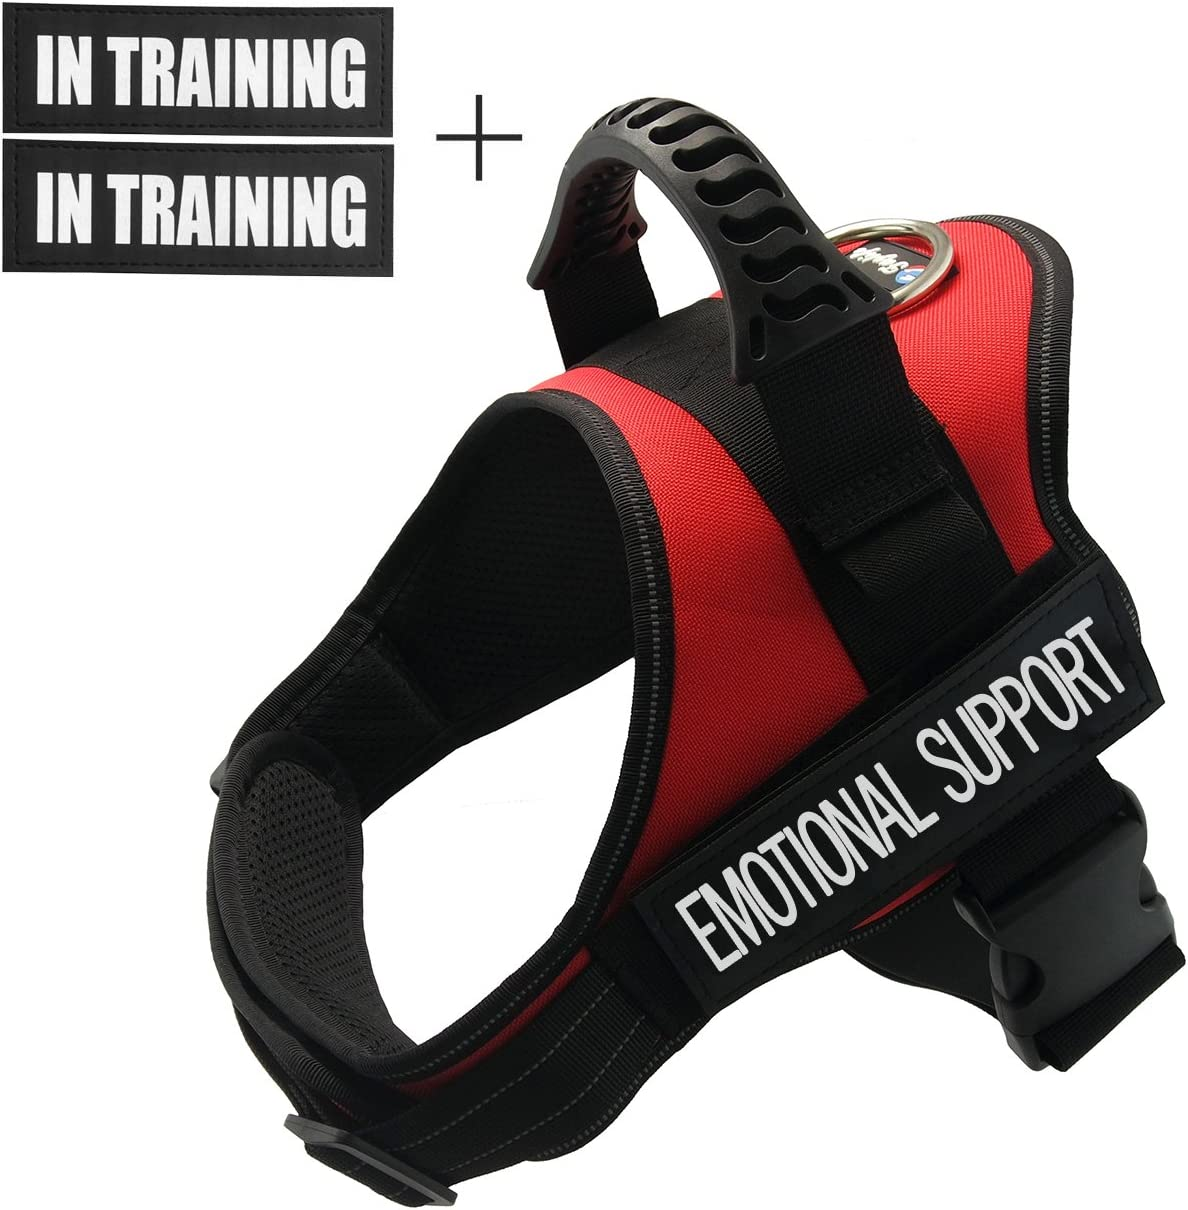 Fairwin Emotional Support Dog Vest Harness for Service Dog - Adjustable Nylon with Removable Reflective Patches for Emotional Support Dogs Large Medium Small Sizes